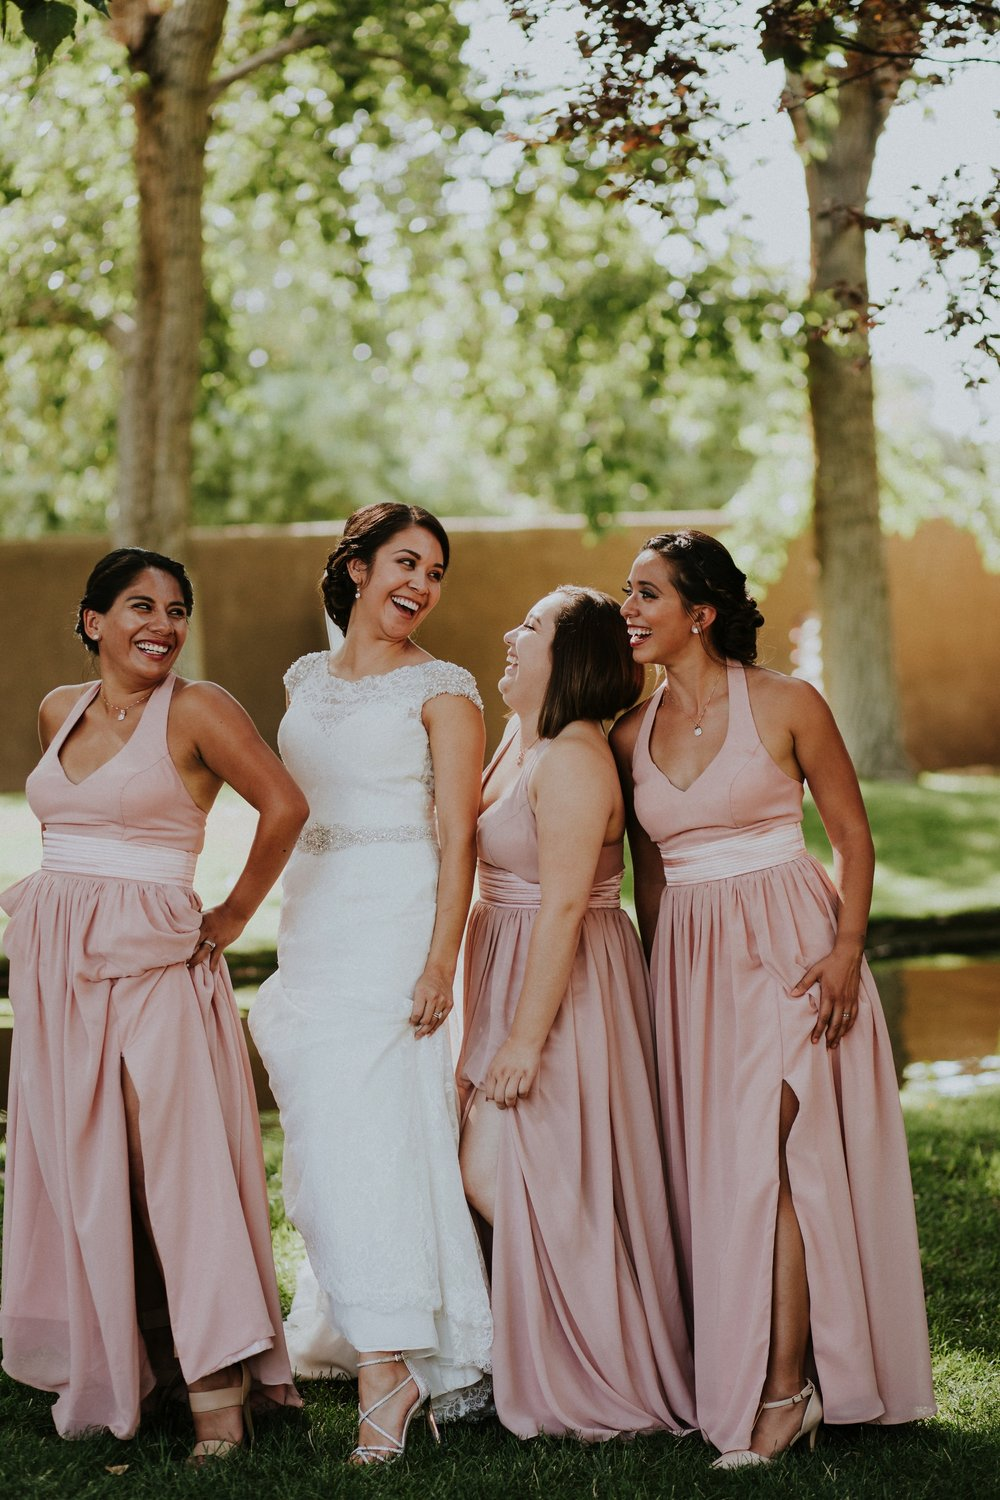 00000000000000086_casa-rondena-winery-wedding-photos_Cosner_Los-Ranchos-New-Mexico-Wedding-Photographer-54.jpg